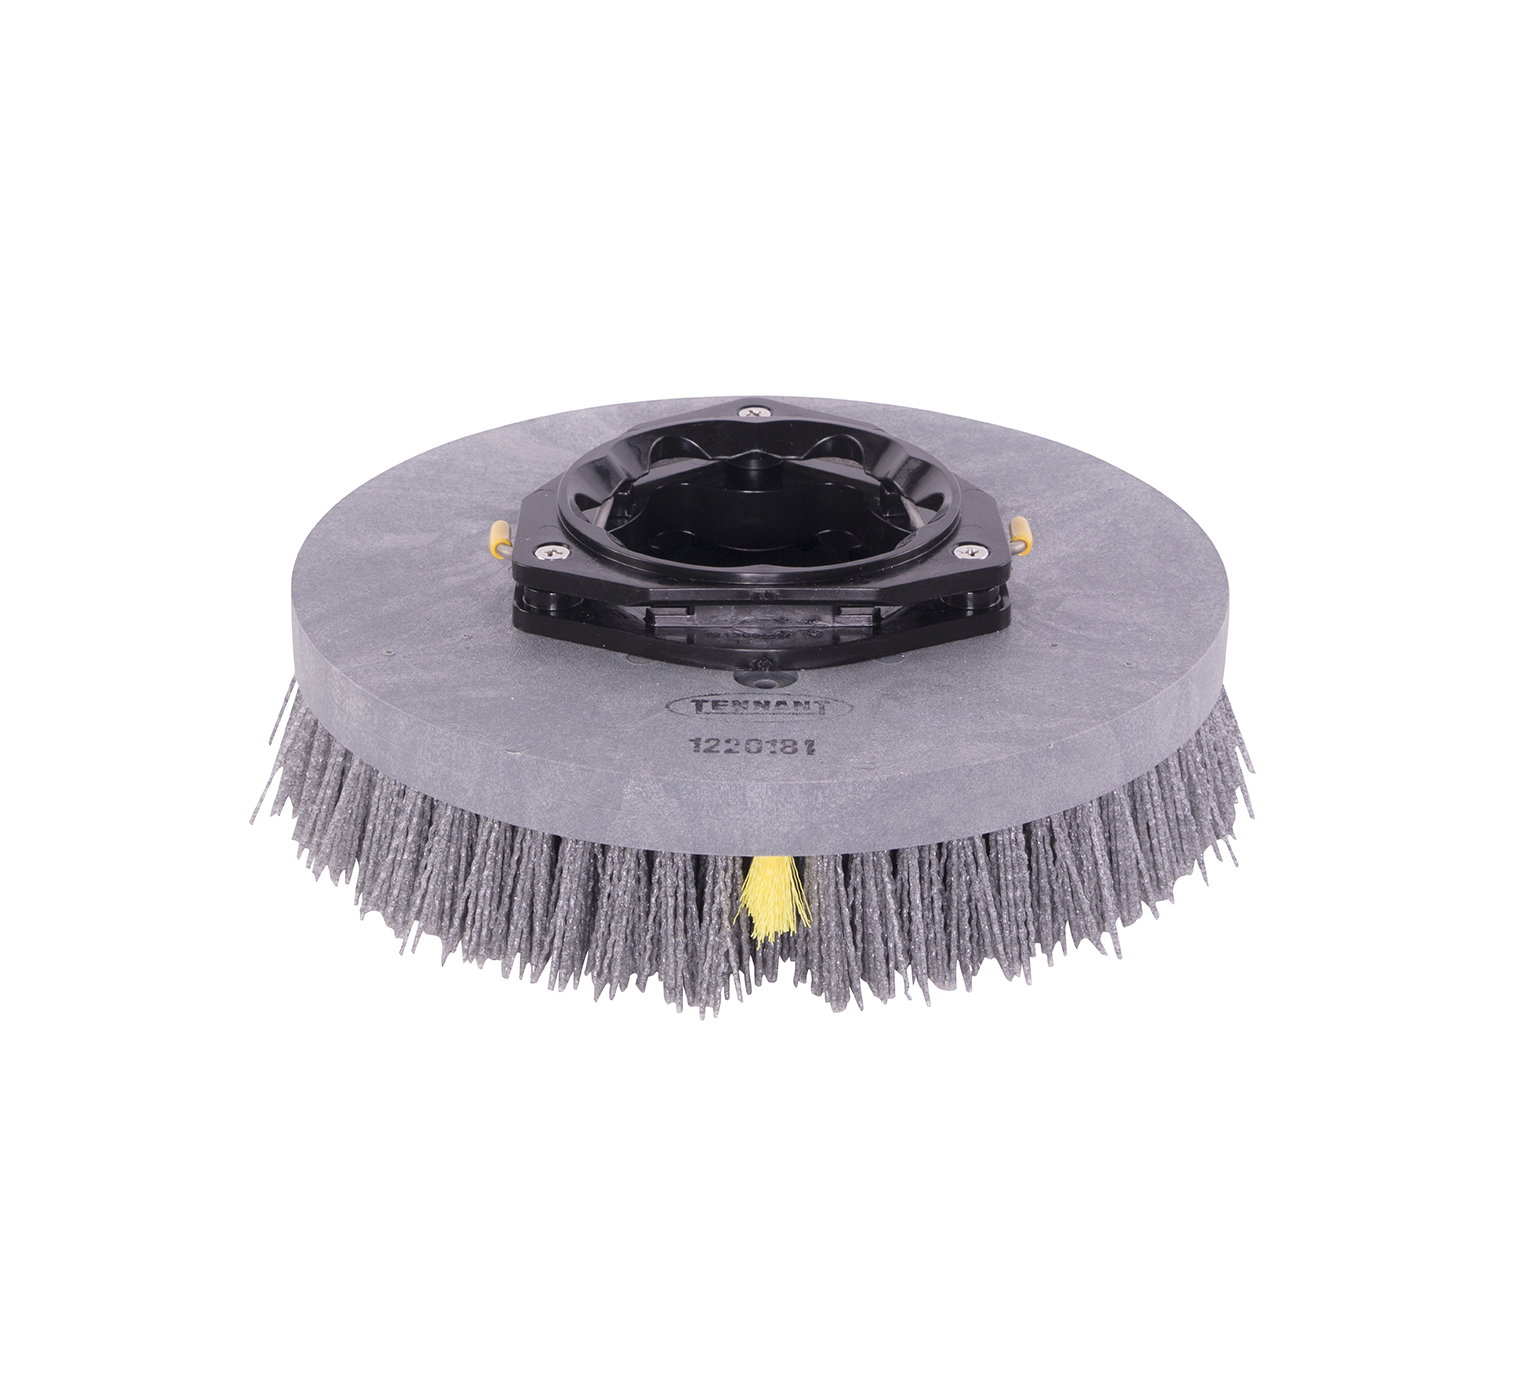 1220181 Super Abrasive Disk Scrub Brush Assembly – 12 in / 304.8 mm alt 1